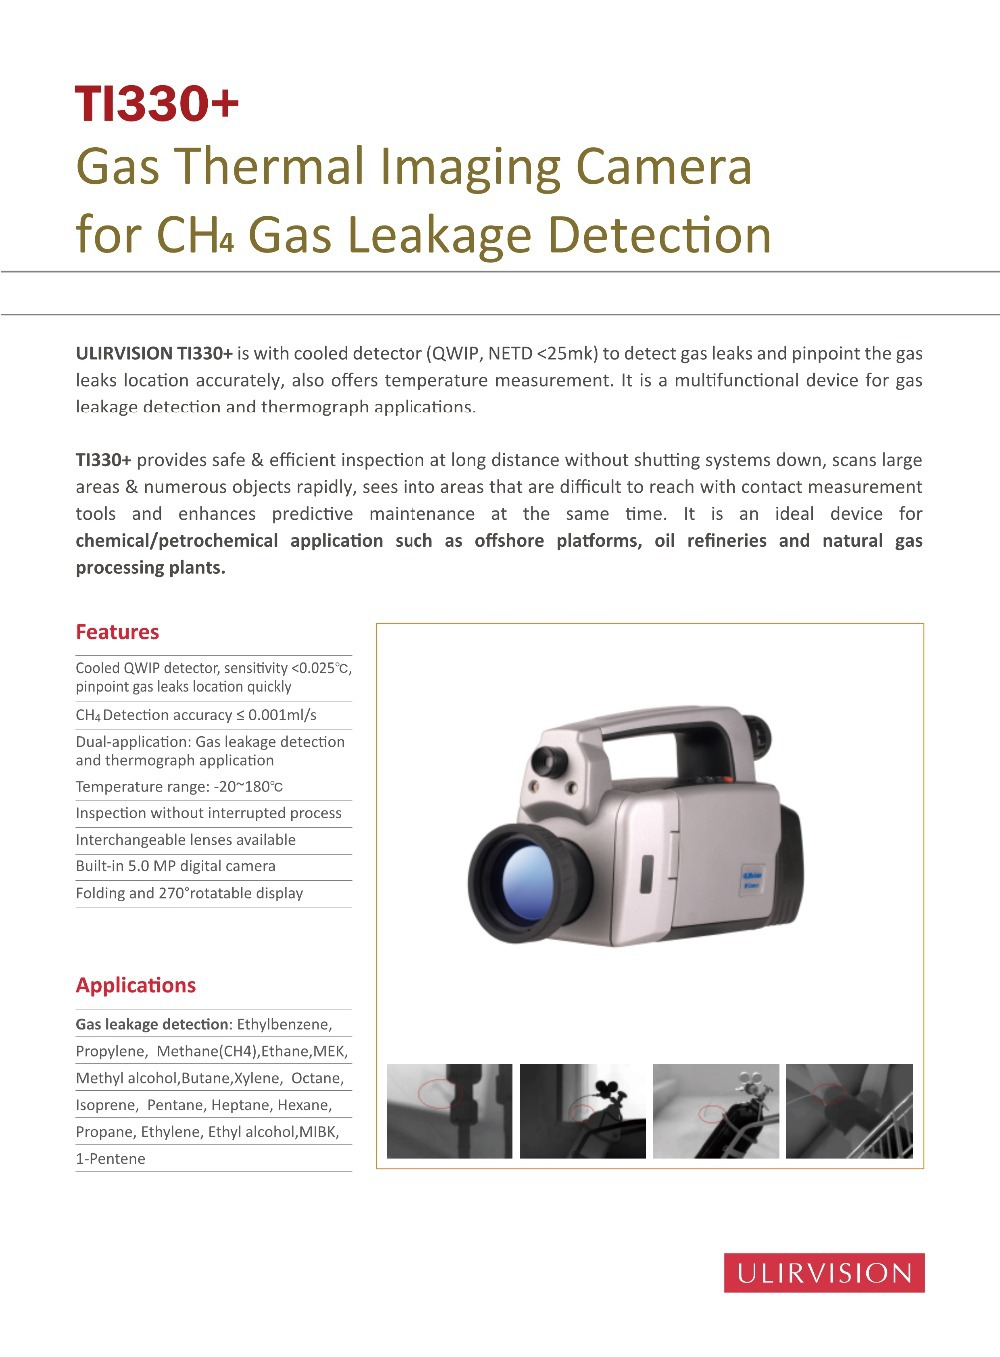 Gas Infrared Camera TI330+ for CH4 Gas Leaks Detection